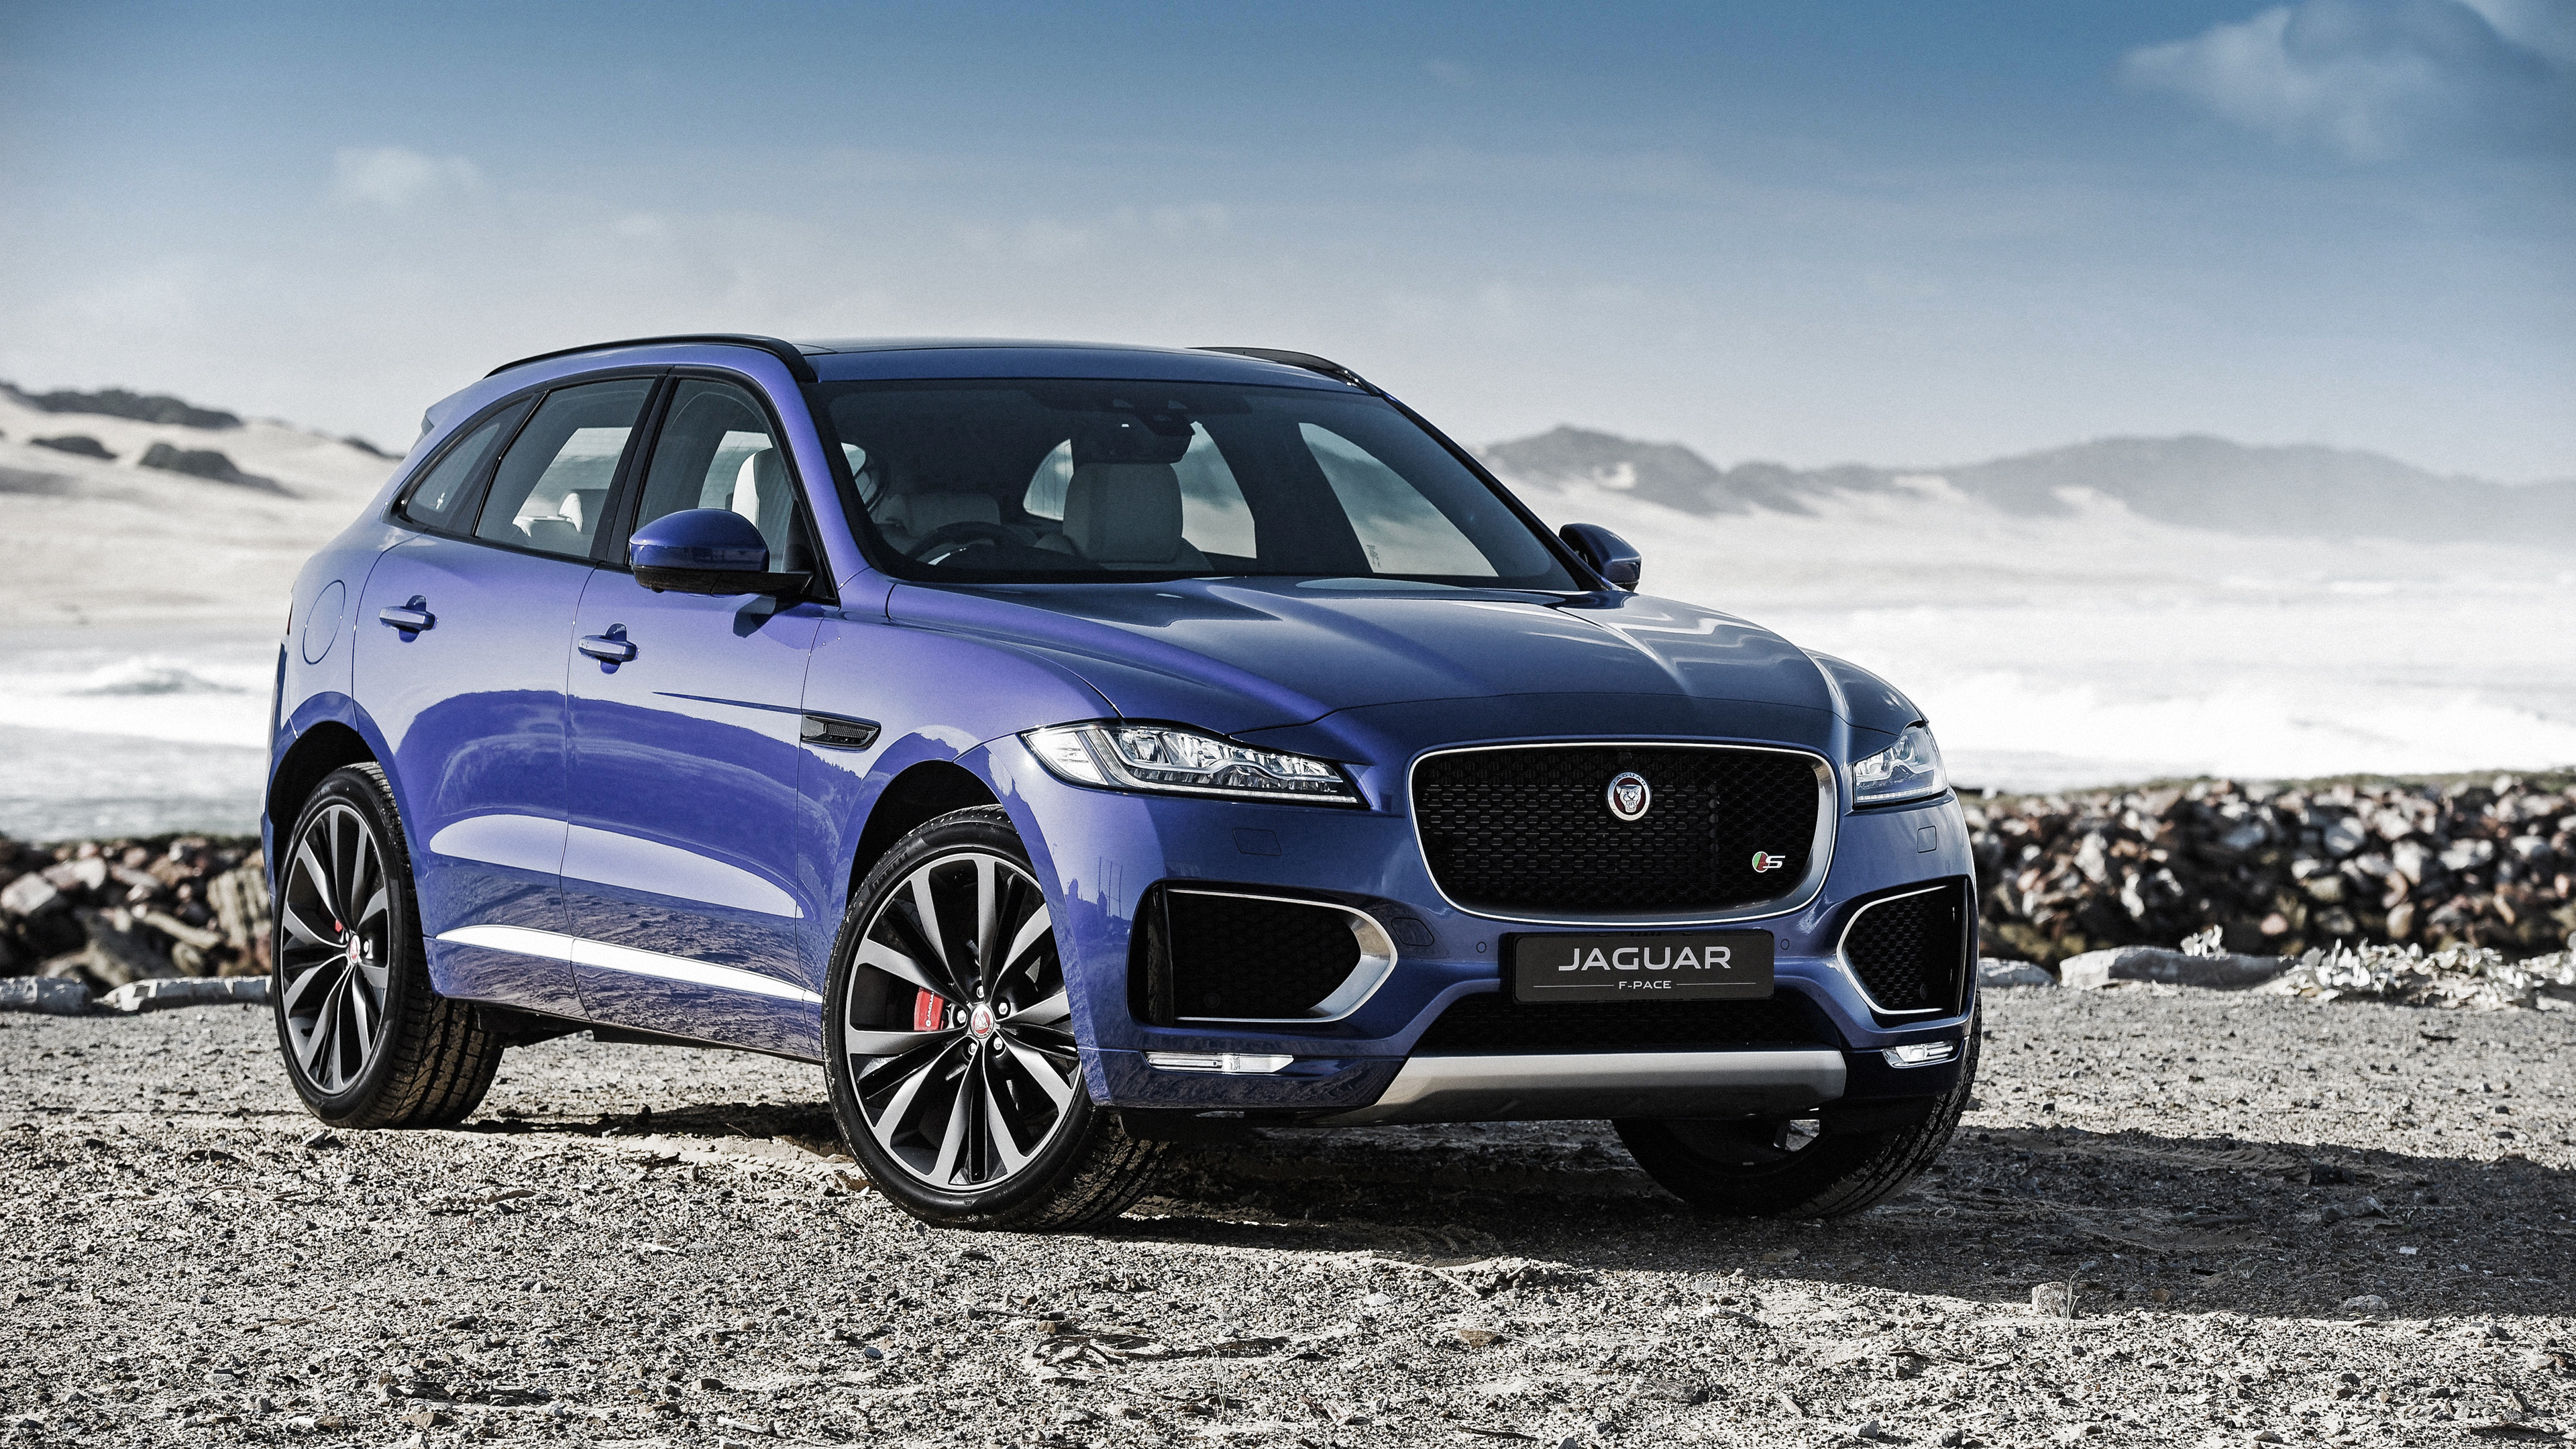 2017 Jaguar F Pace First Edition Wallpaper Hd Car Wallpapers